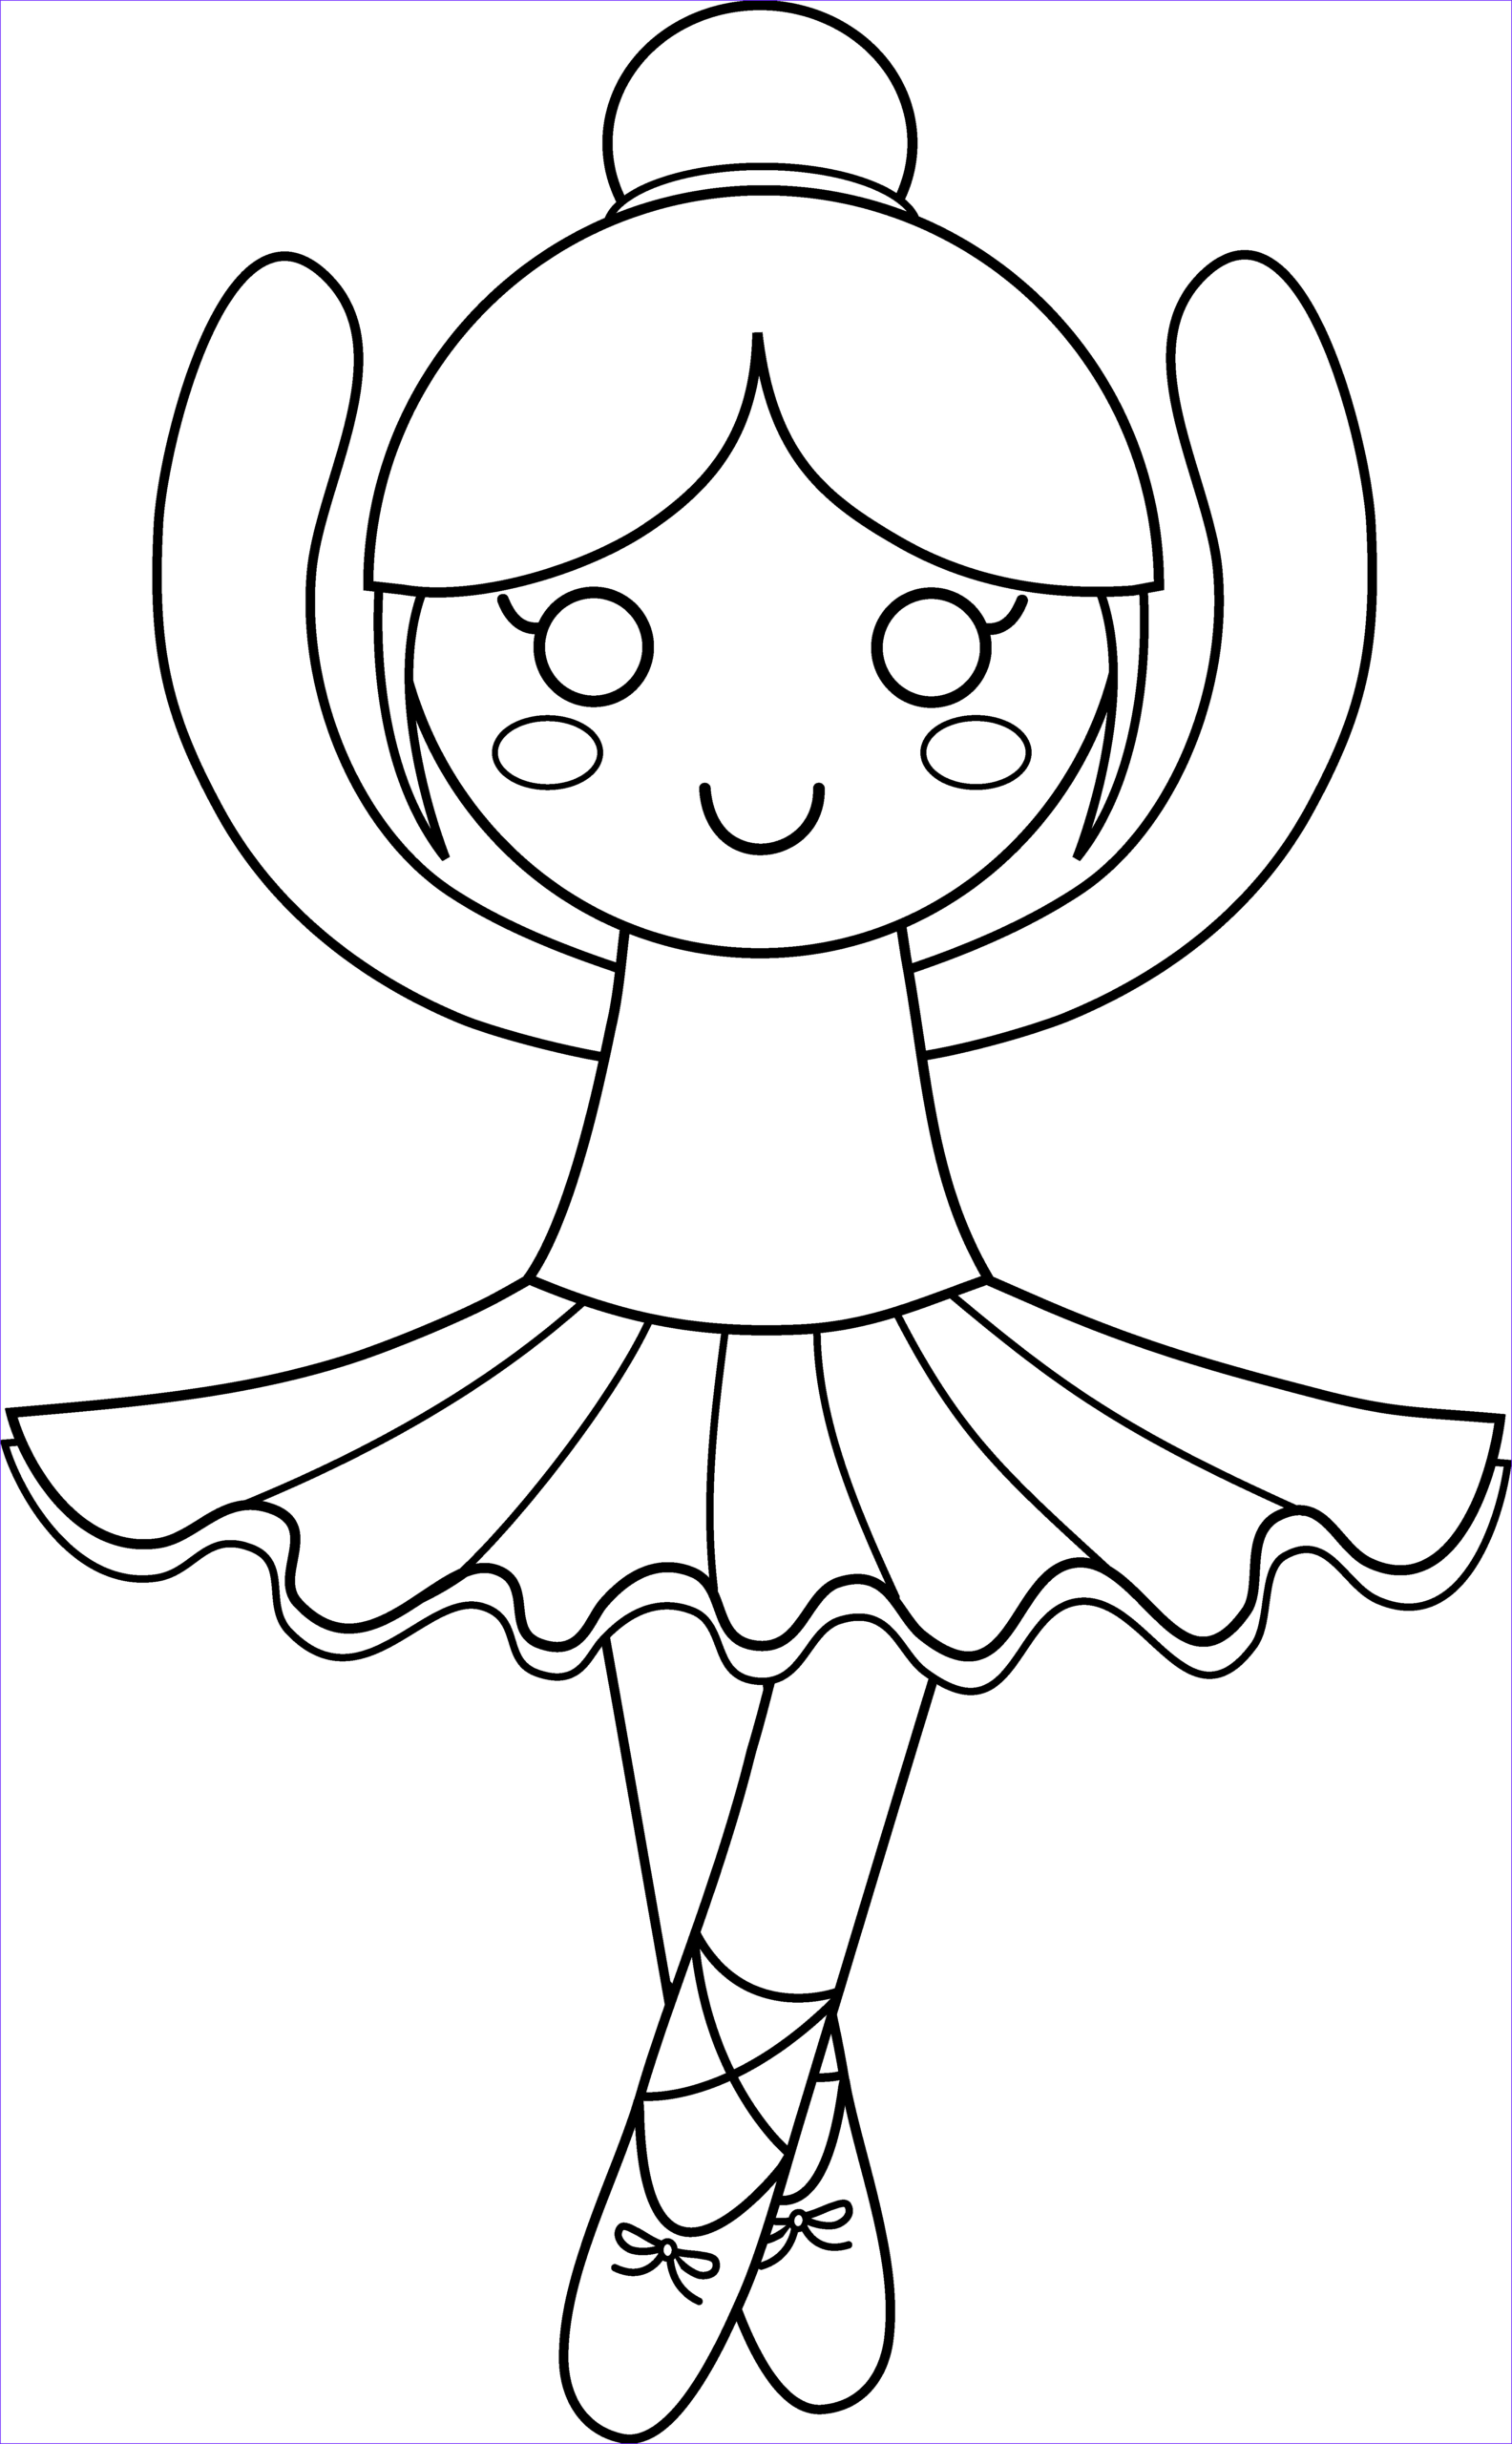 Ballerina Printable Coloring Page Inspirational Image Cute Ballerina Coloring Page Free Clip Art